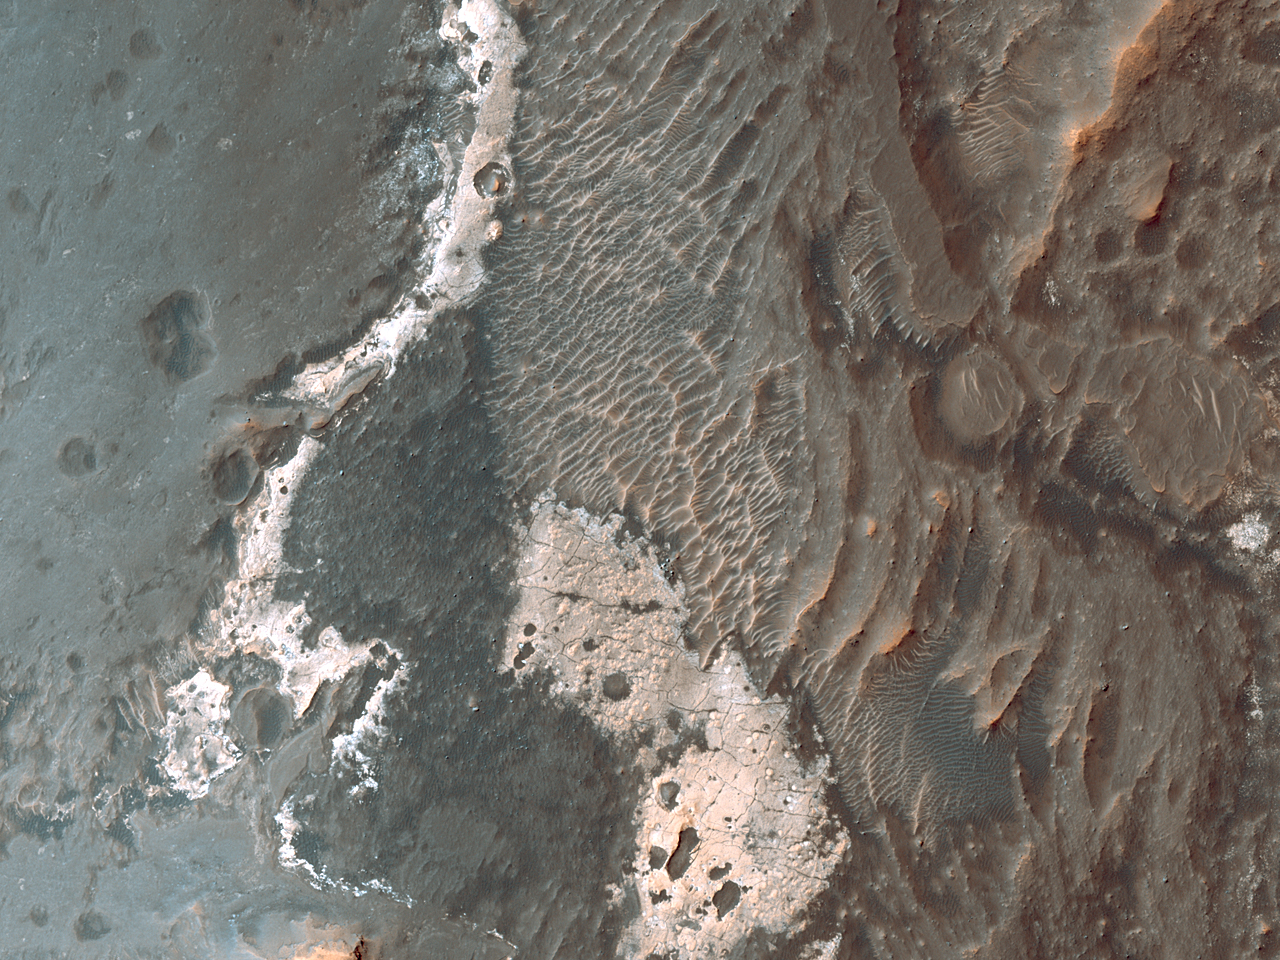 Light-Toned Material and Rough Terrain along Noctis Labyrinthus Pit